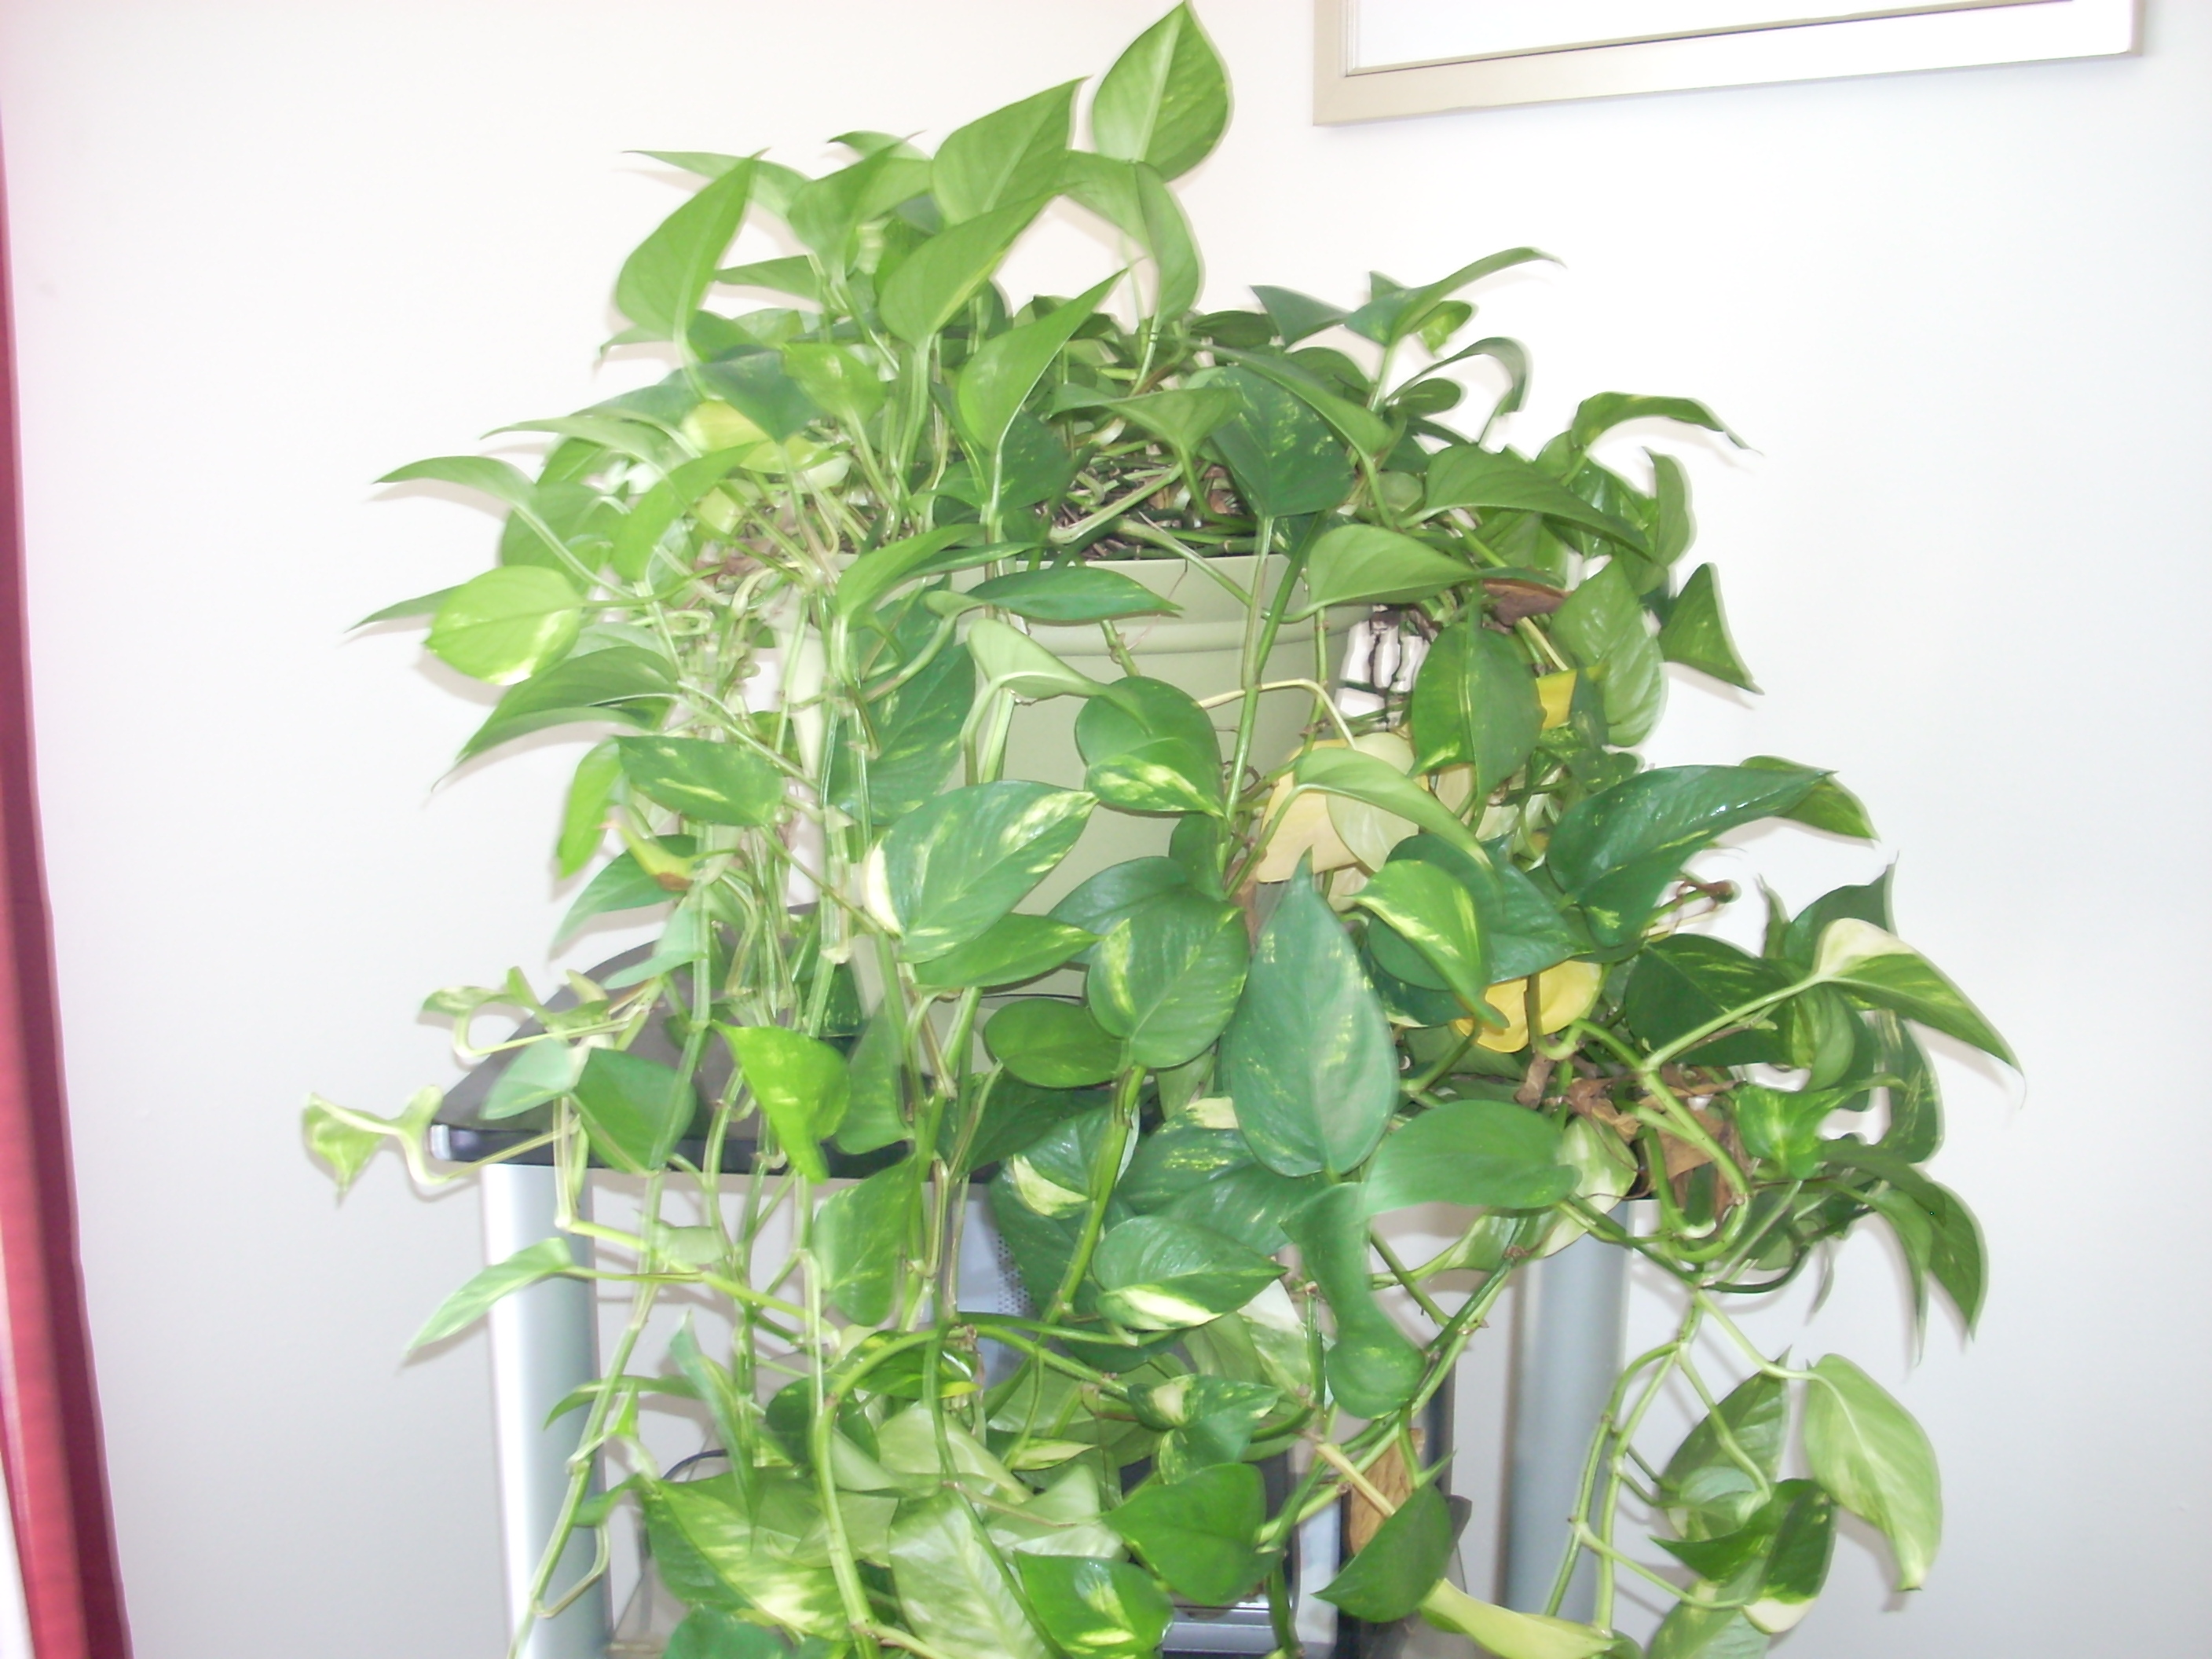 How to maintain indoor plants garden guides Images of indoor plants